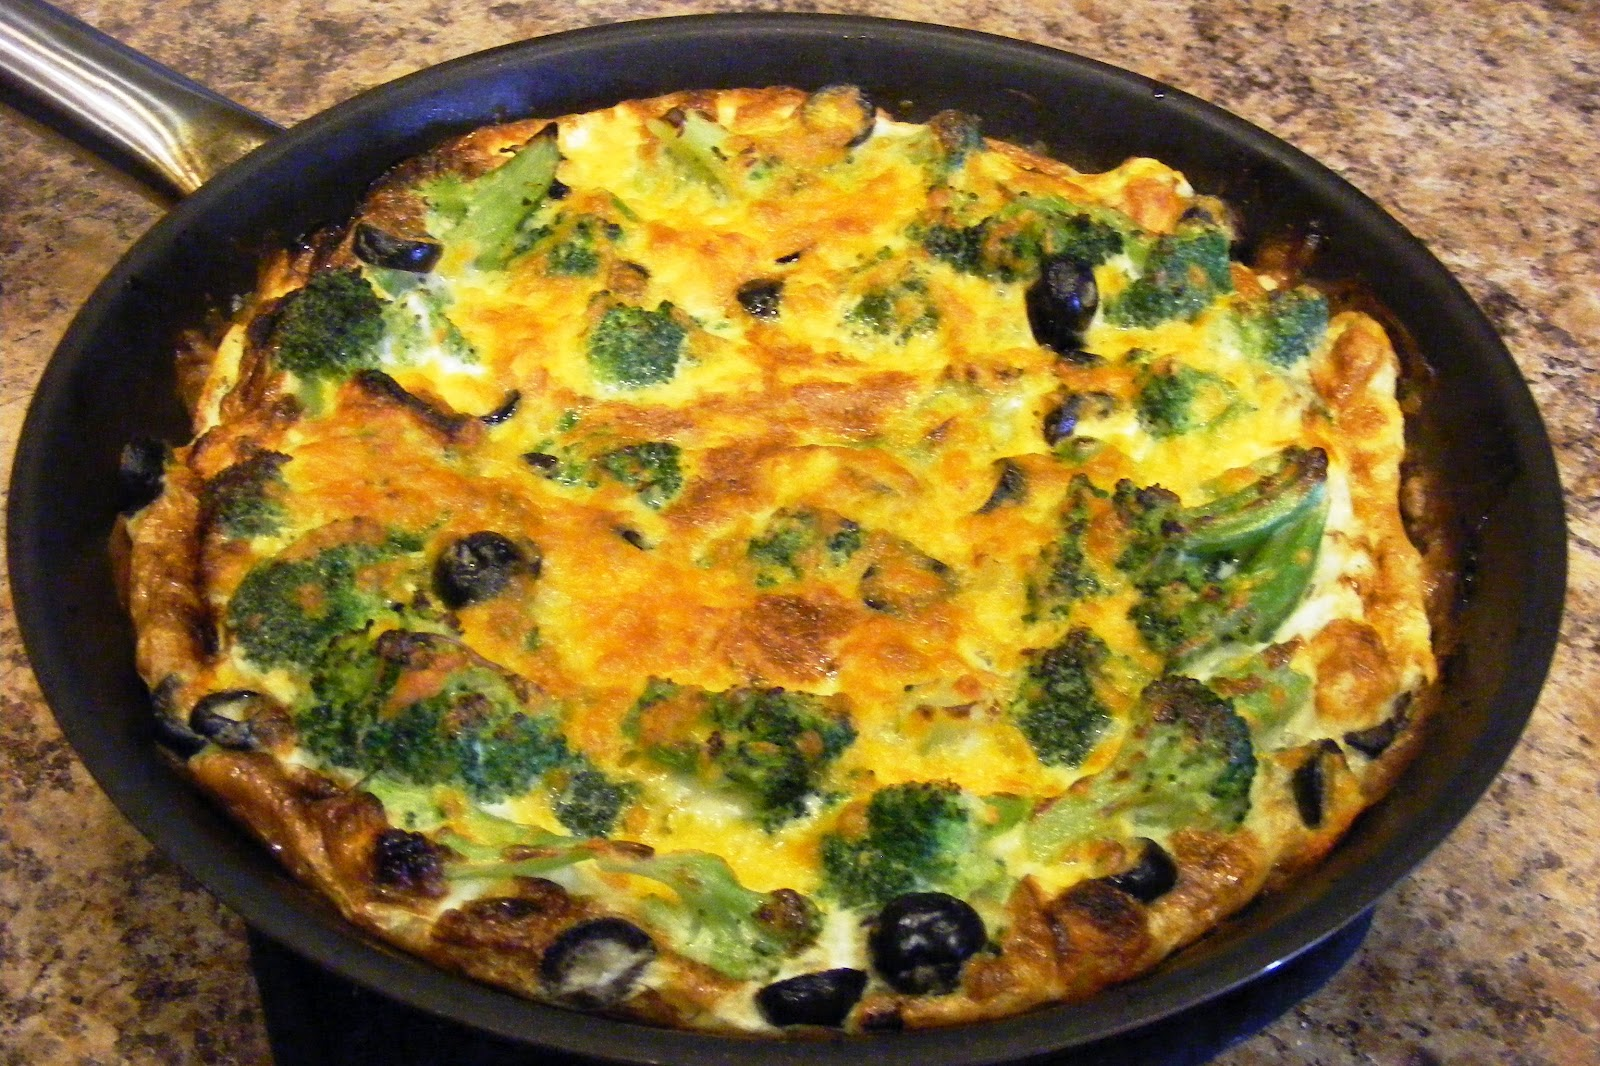 ... frittata three cheese italian sausage frittata broccoli cheddar